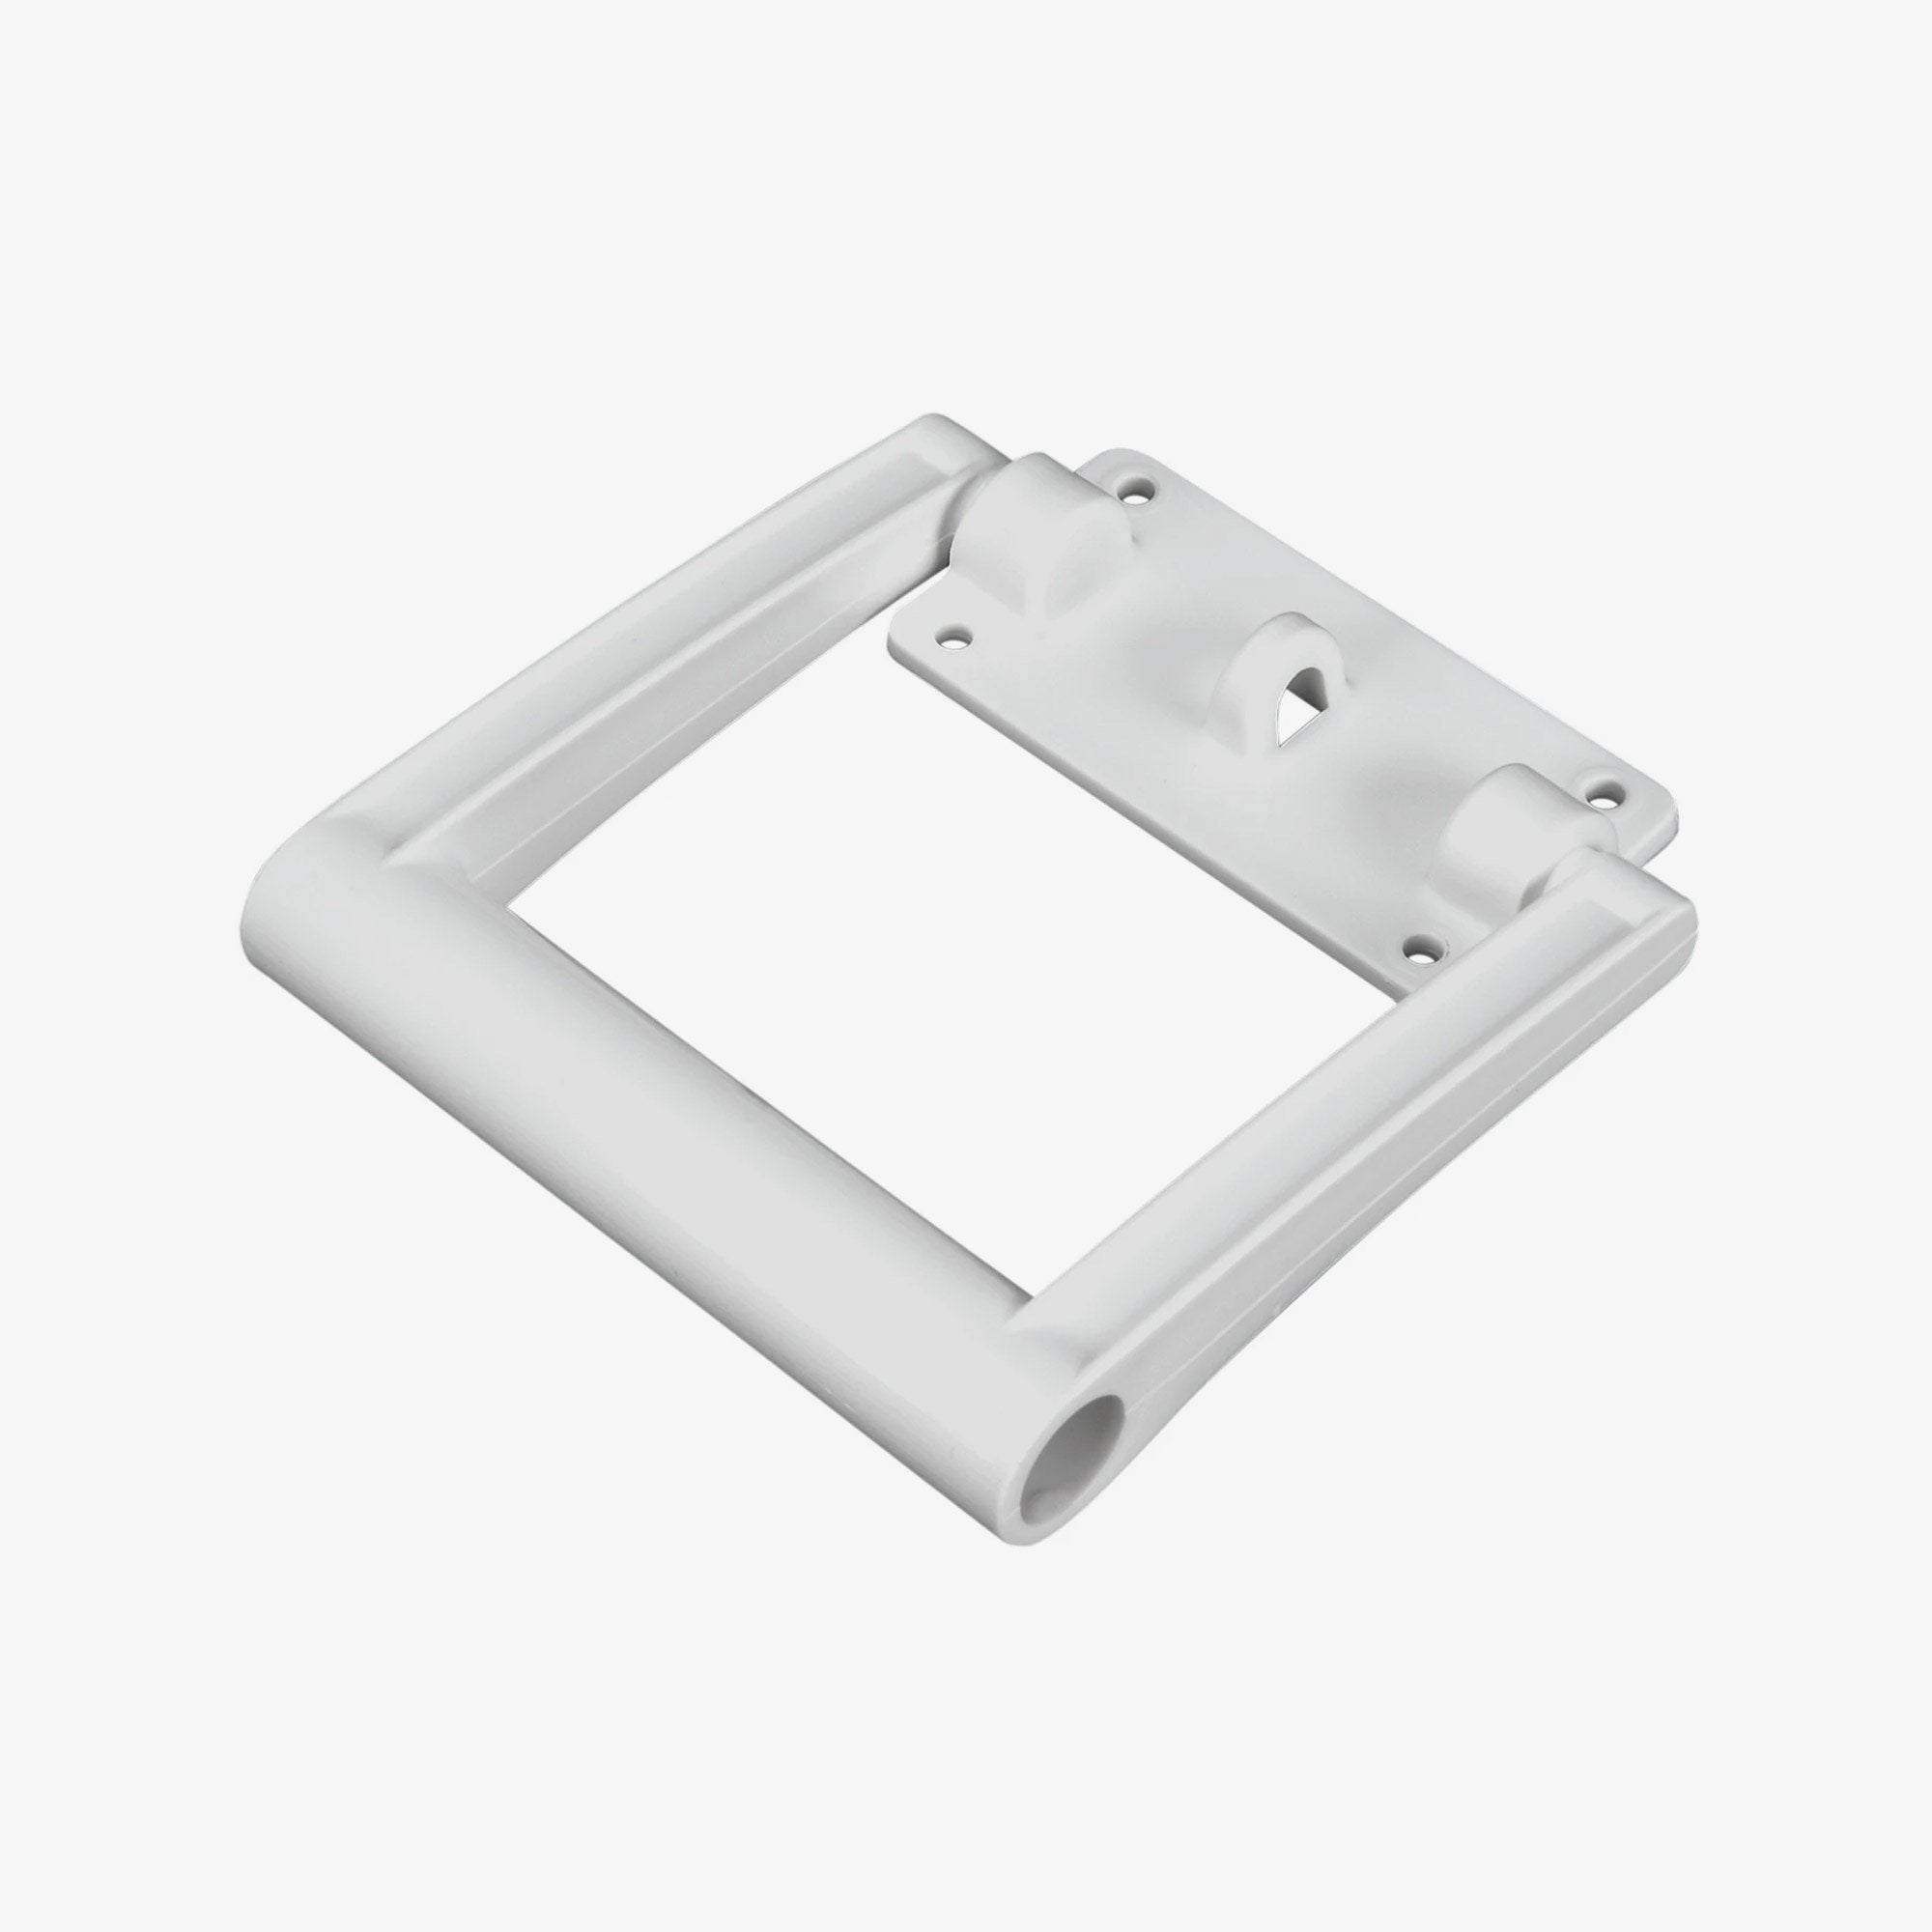 Large View | Handle Assembly For 94 Qt Coolers in White at Igloo Replacement Parts